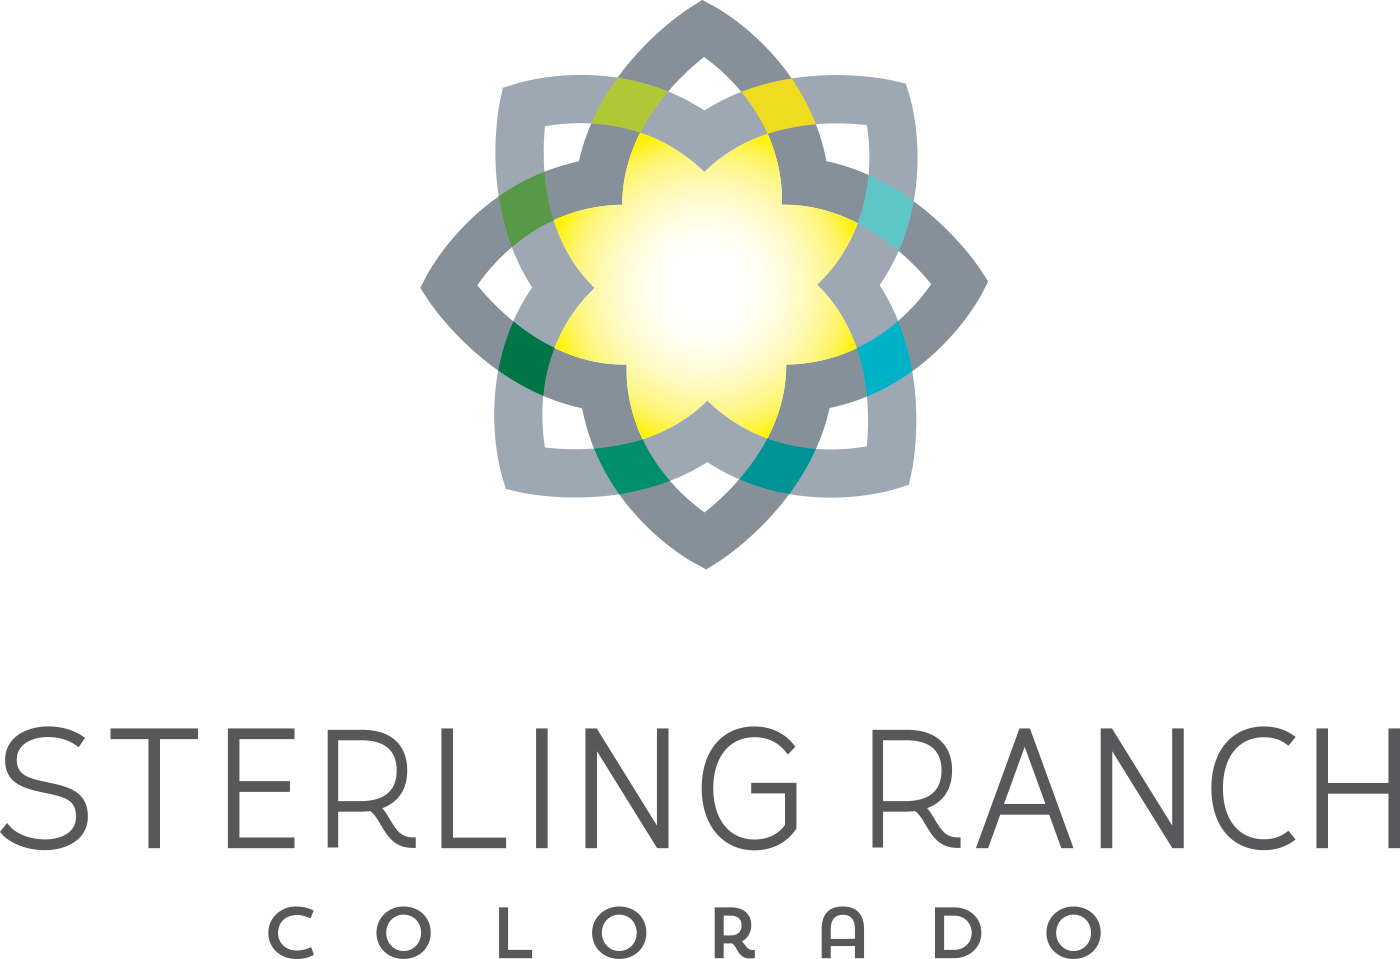 SterlingRanch_logo_4c_FINAL